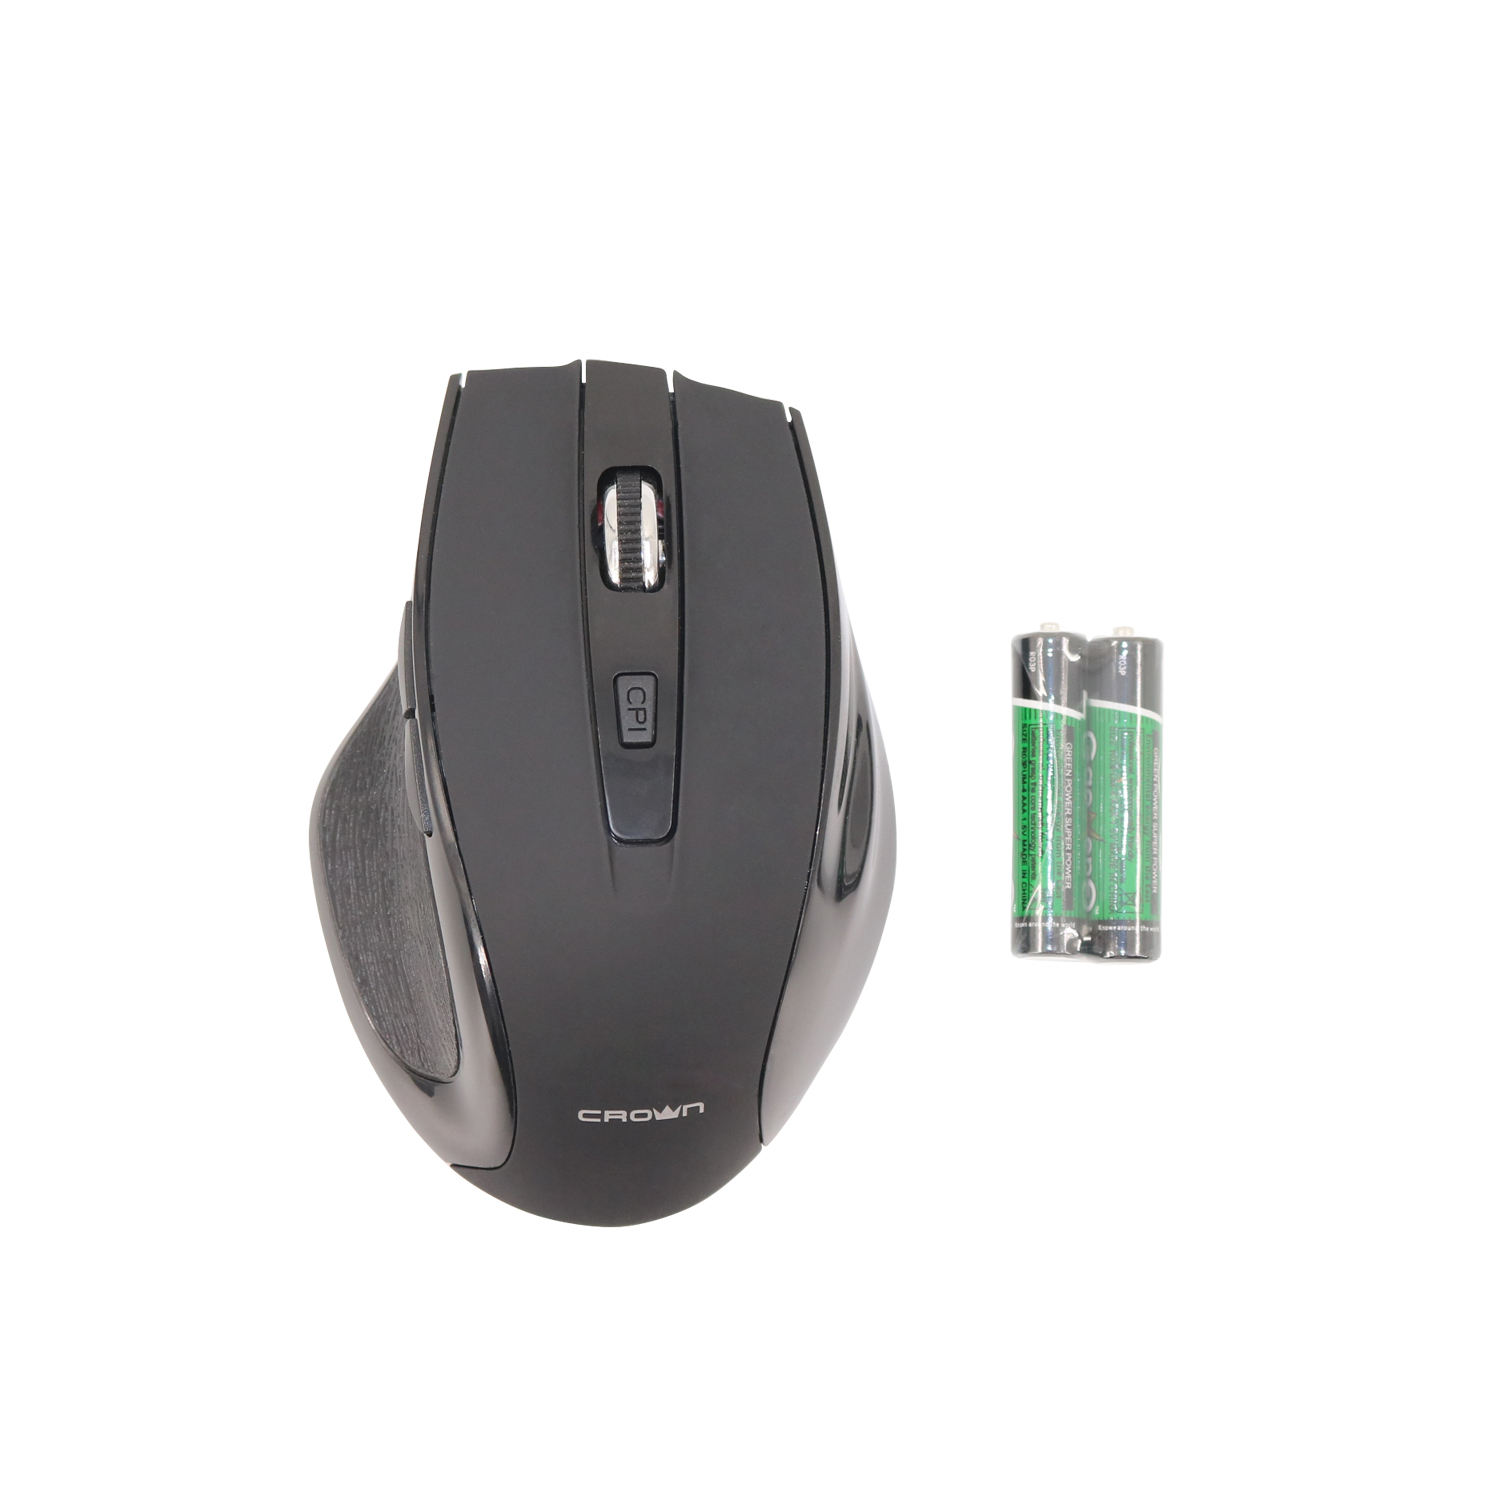 CROWN wireless mouse 2.4ghz optical usb mouse gaming wireless